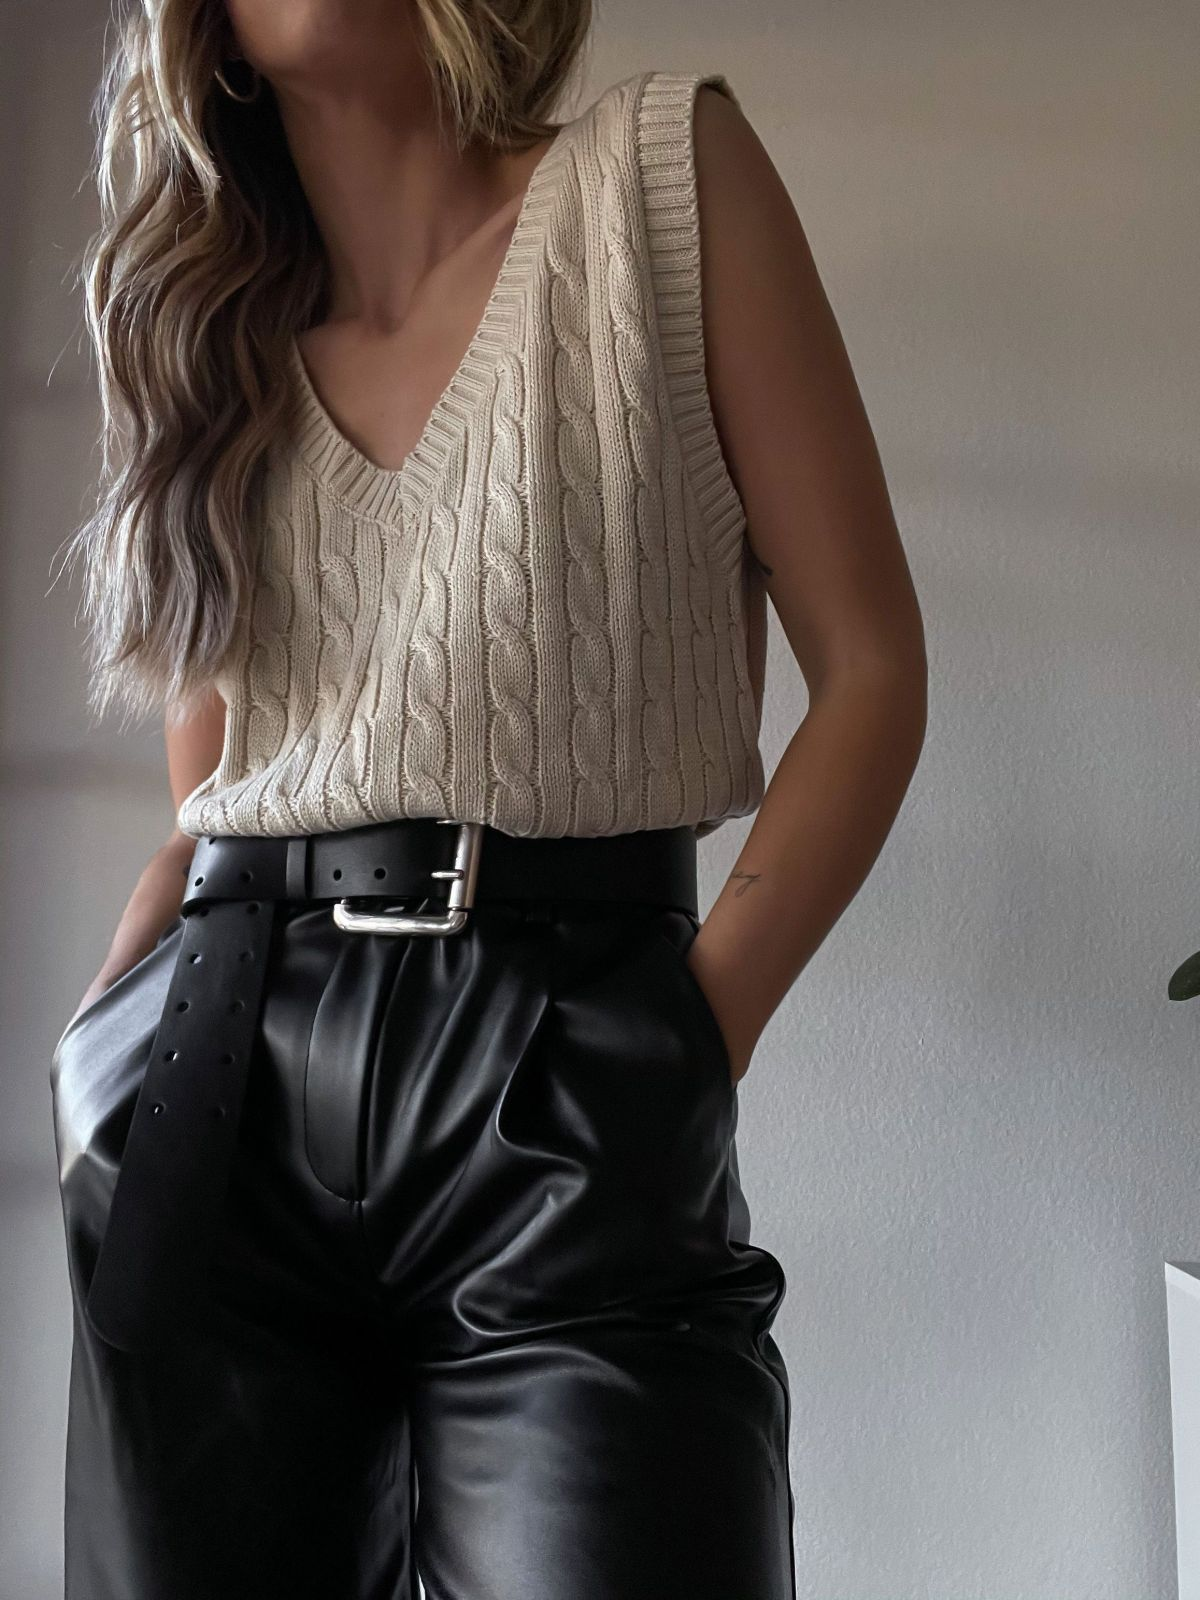 Beige sweater vest with black leather pants